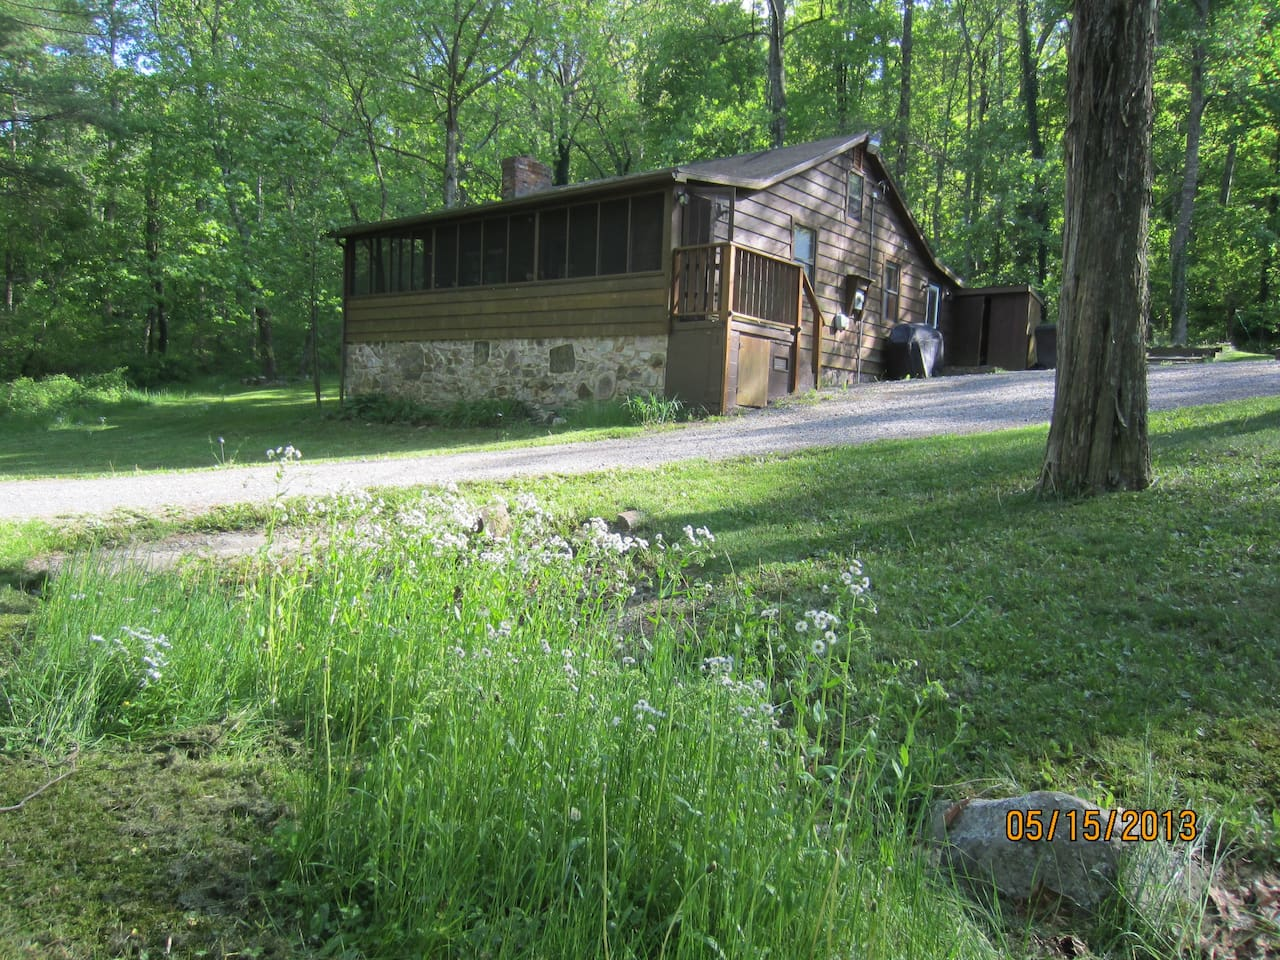 Lower Rawley Cabin in Spring before the farm animals and fence were added.